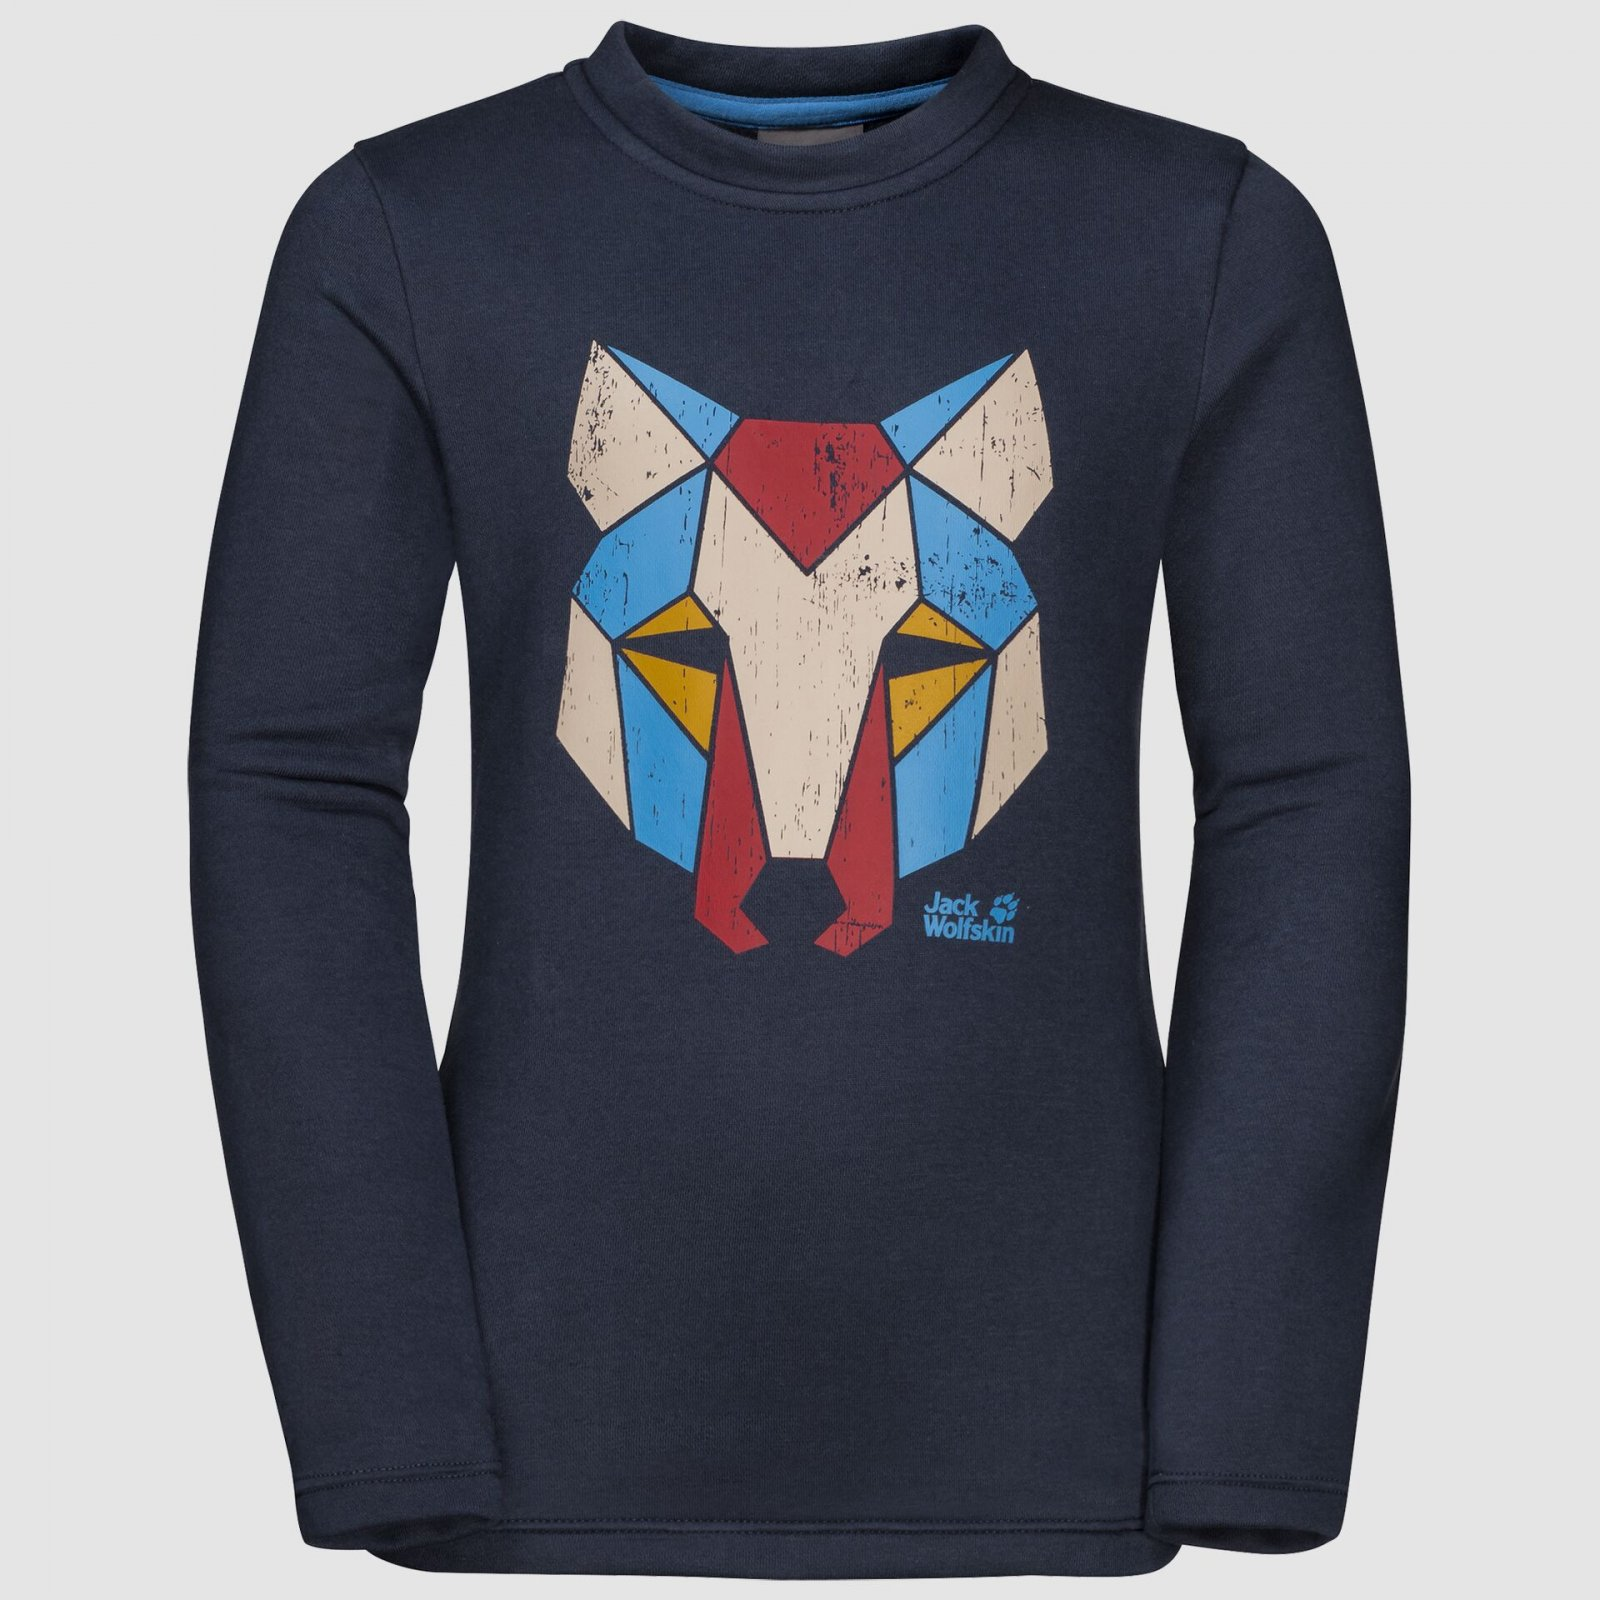 Детский джемпер JACK WOLFSKIN WINTER SWEATSHIRT